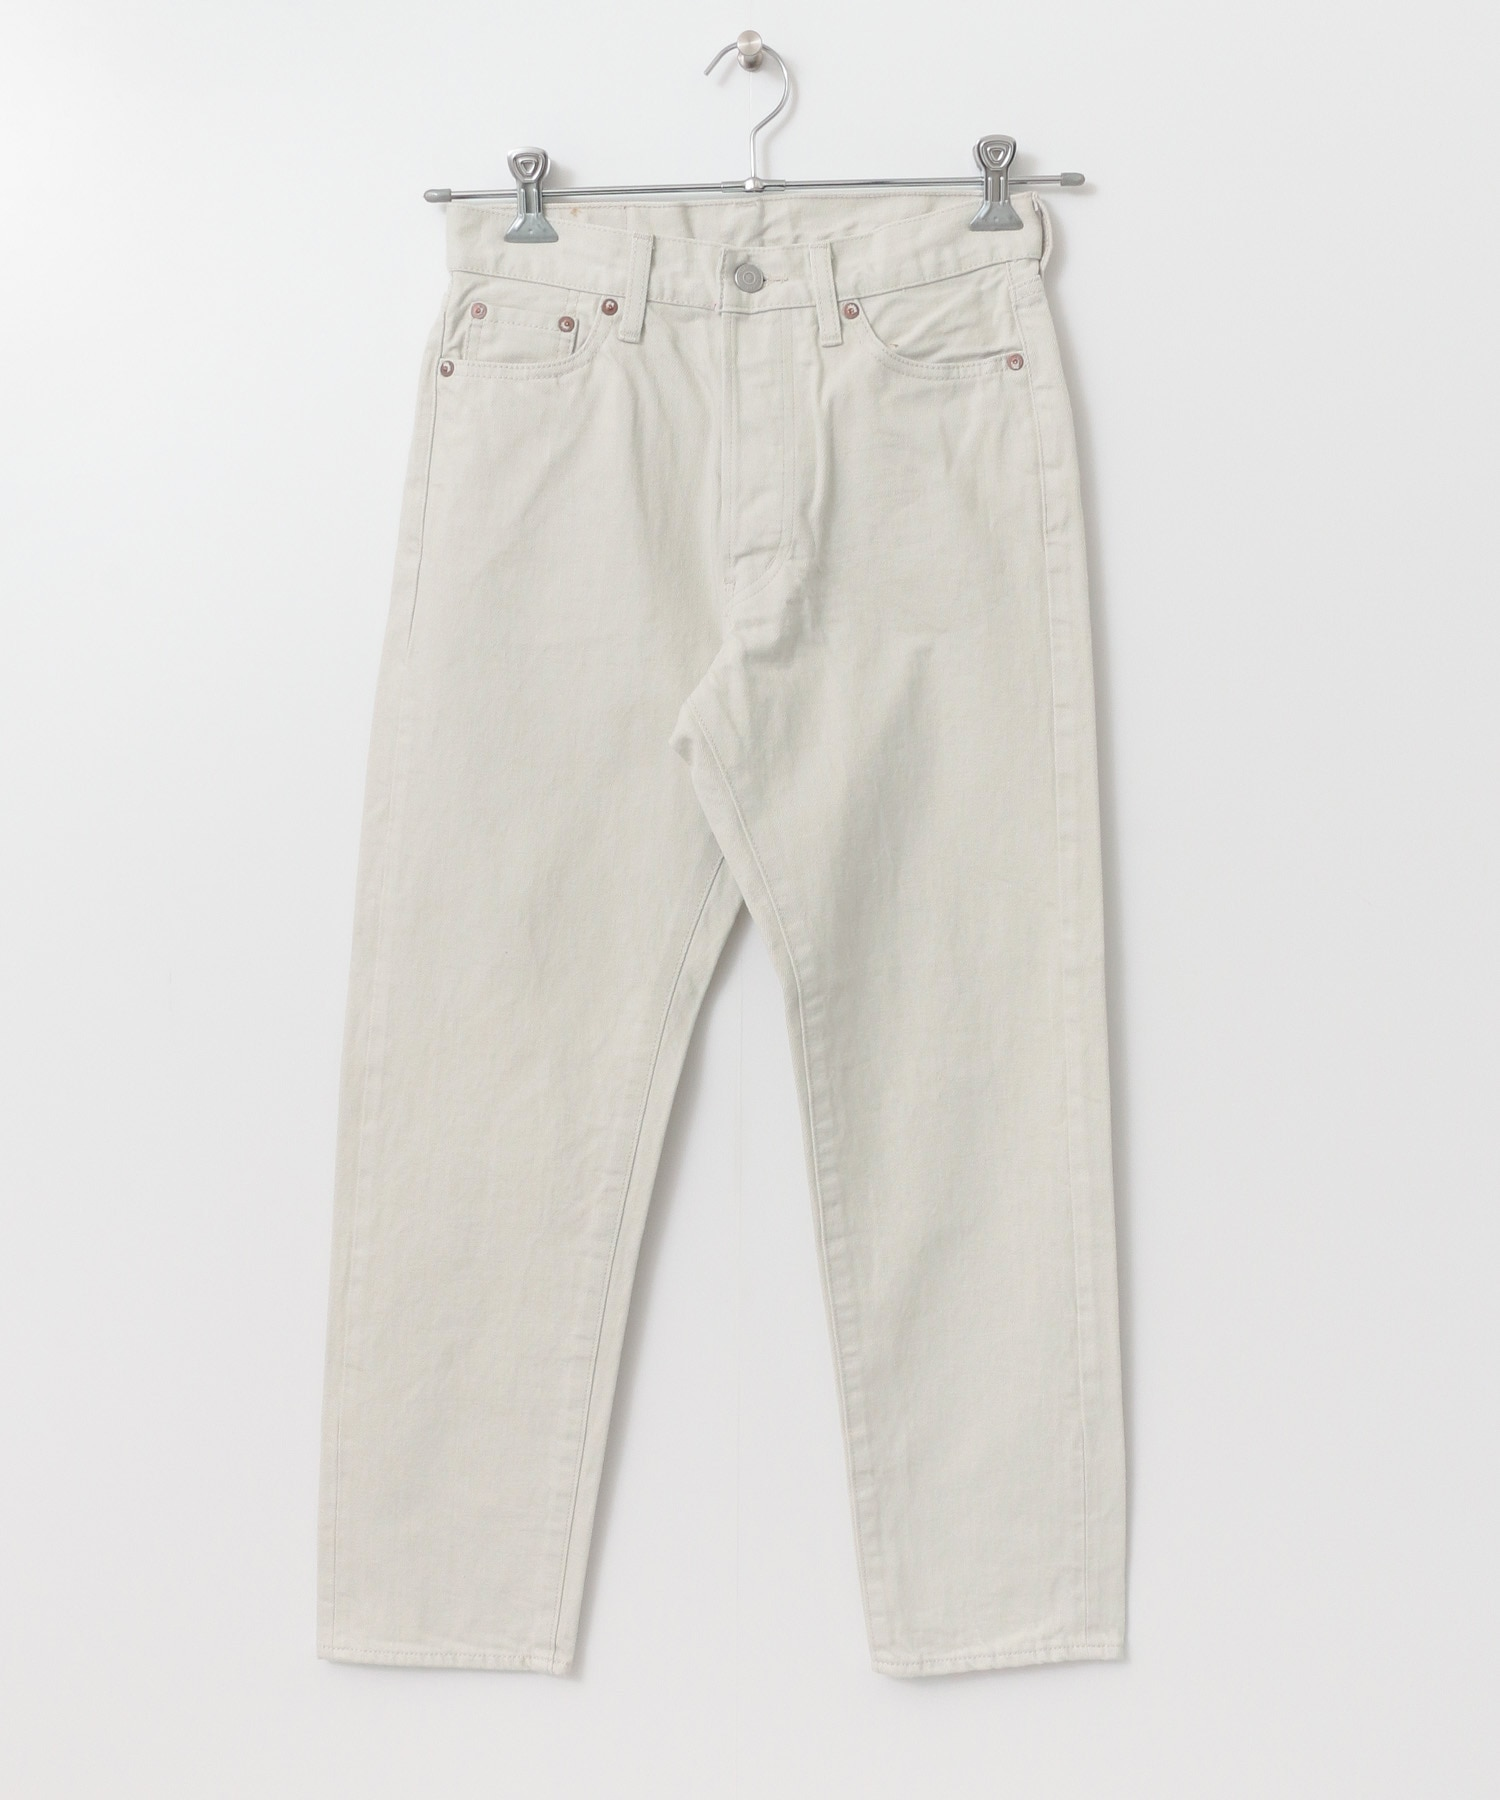 ordinary fits ordinary fits 5POCKET ANKLE DENIM/ow